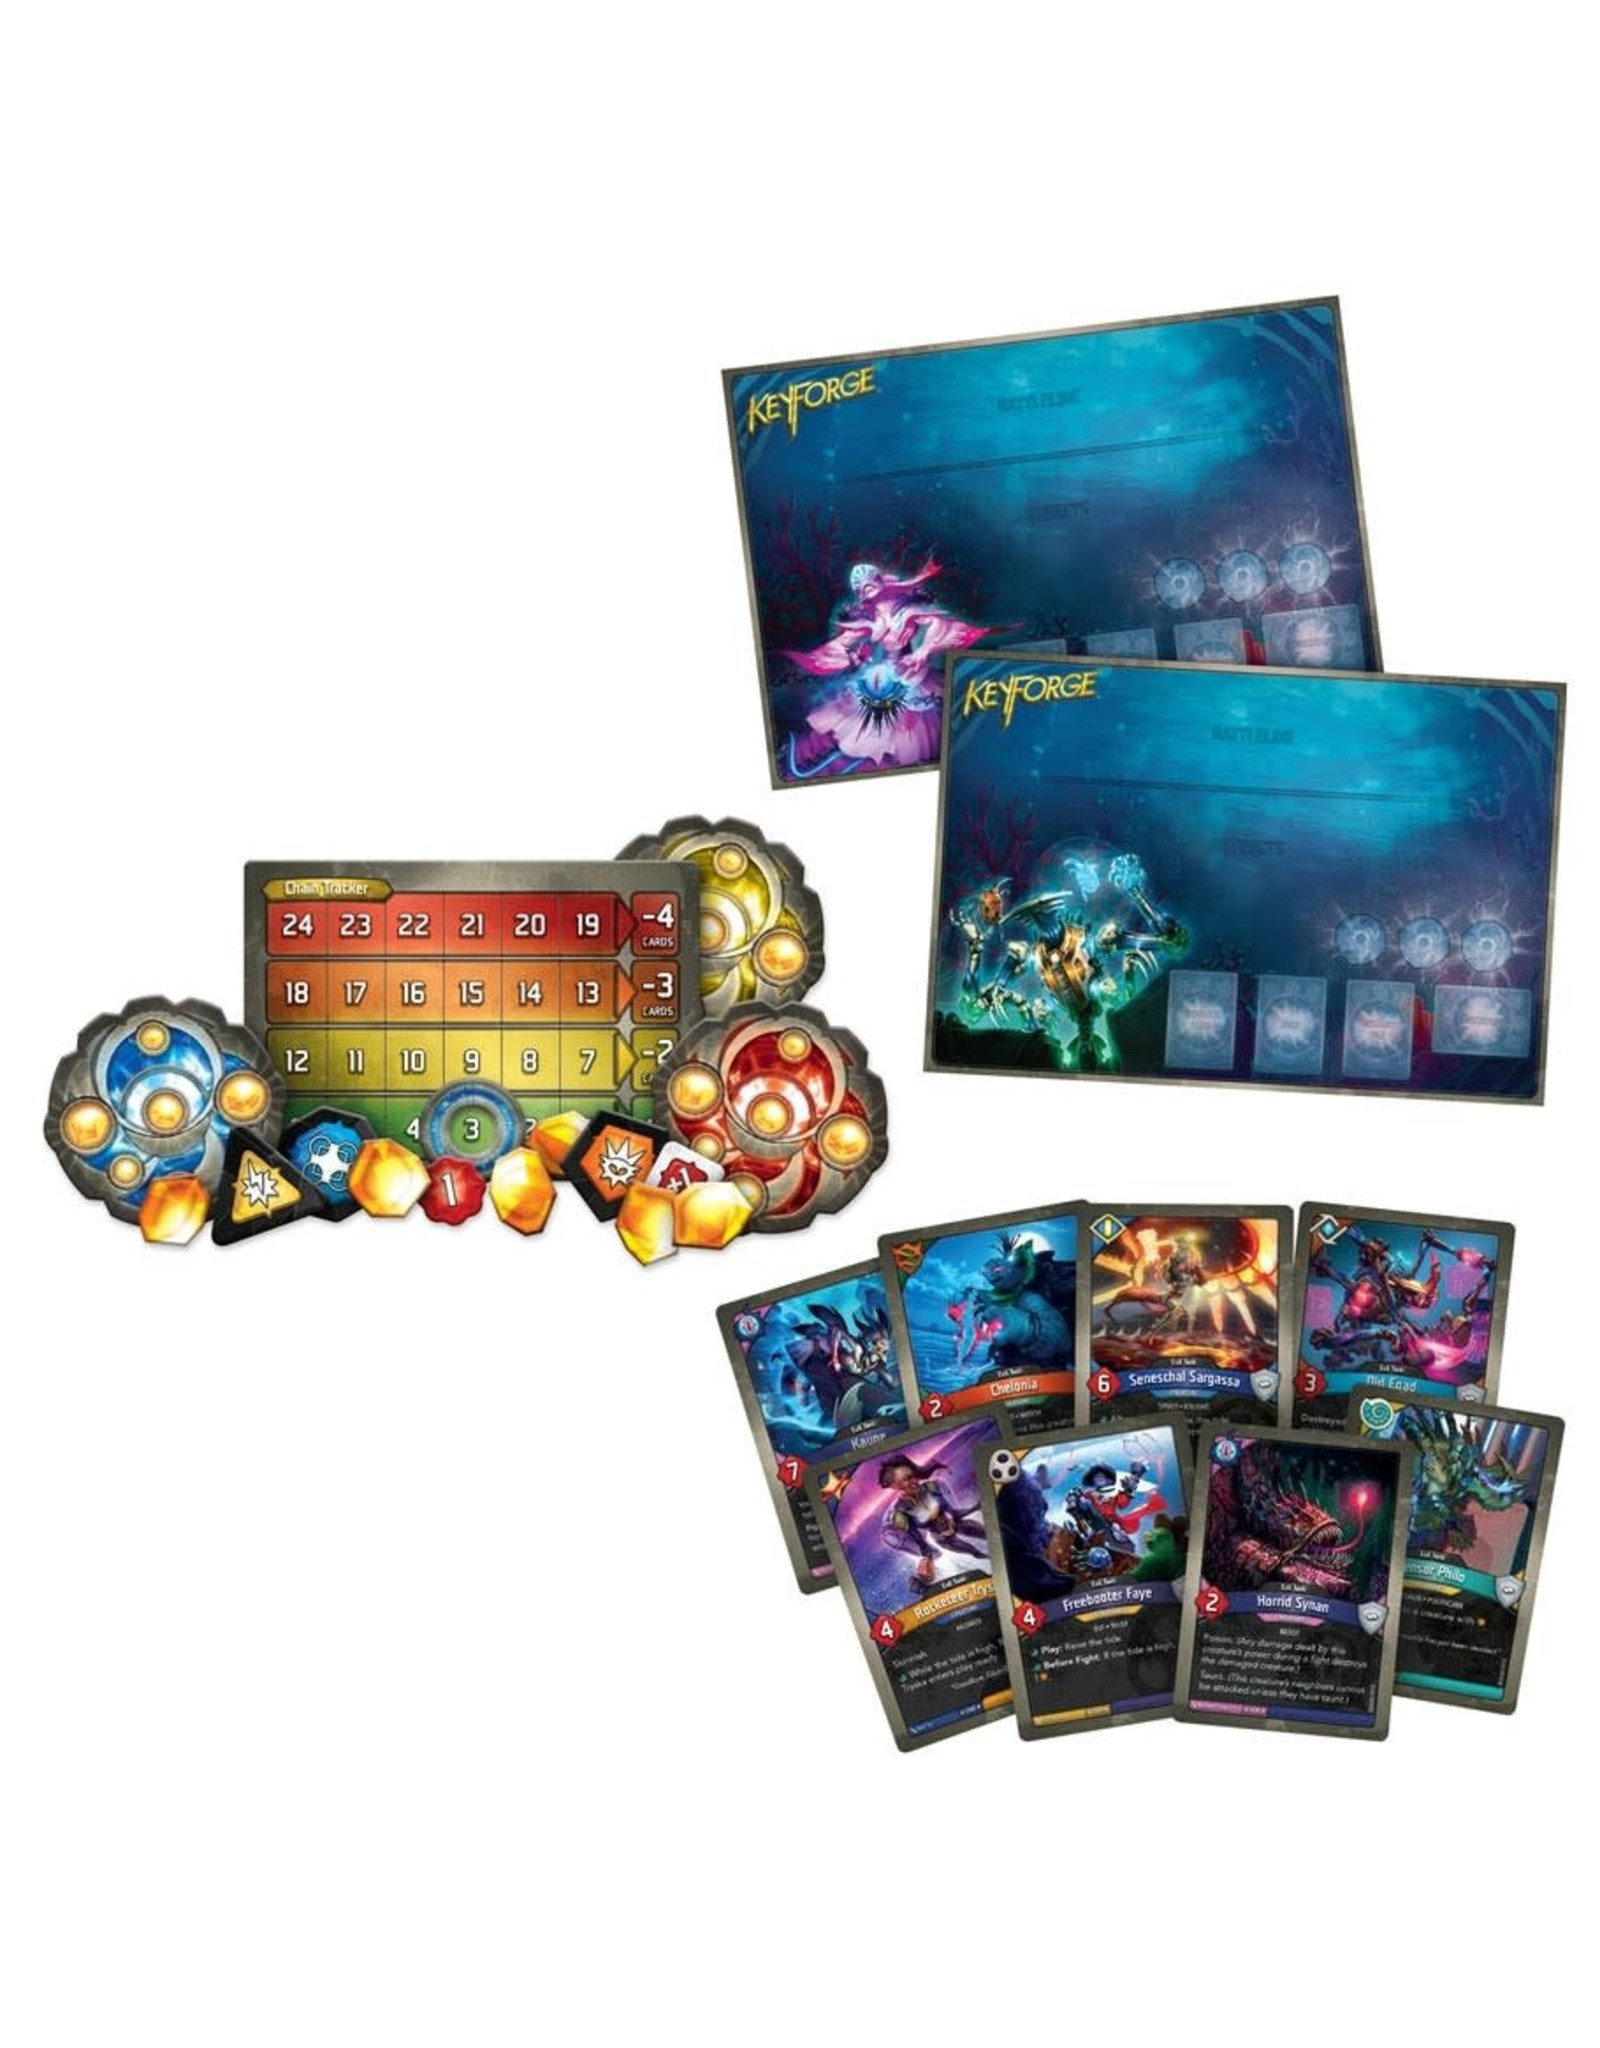 (Pre-Order) KeyForge: Dark Tidings: 2 Player Starter Pack